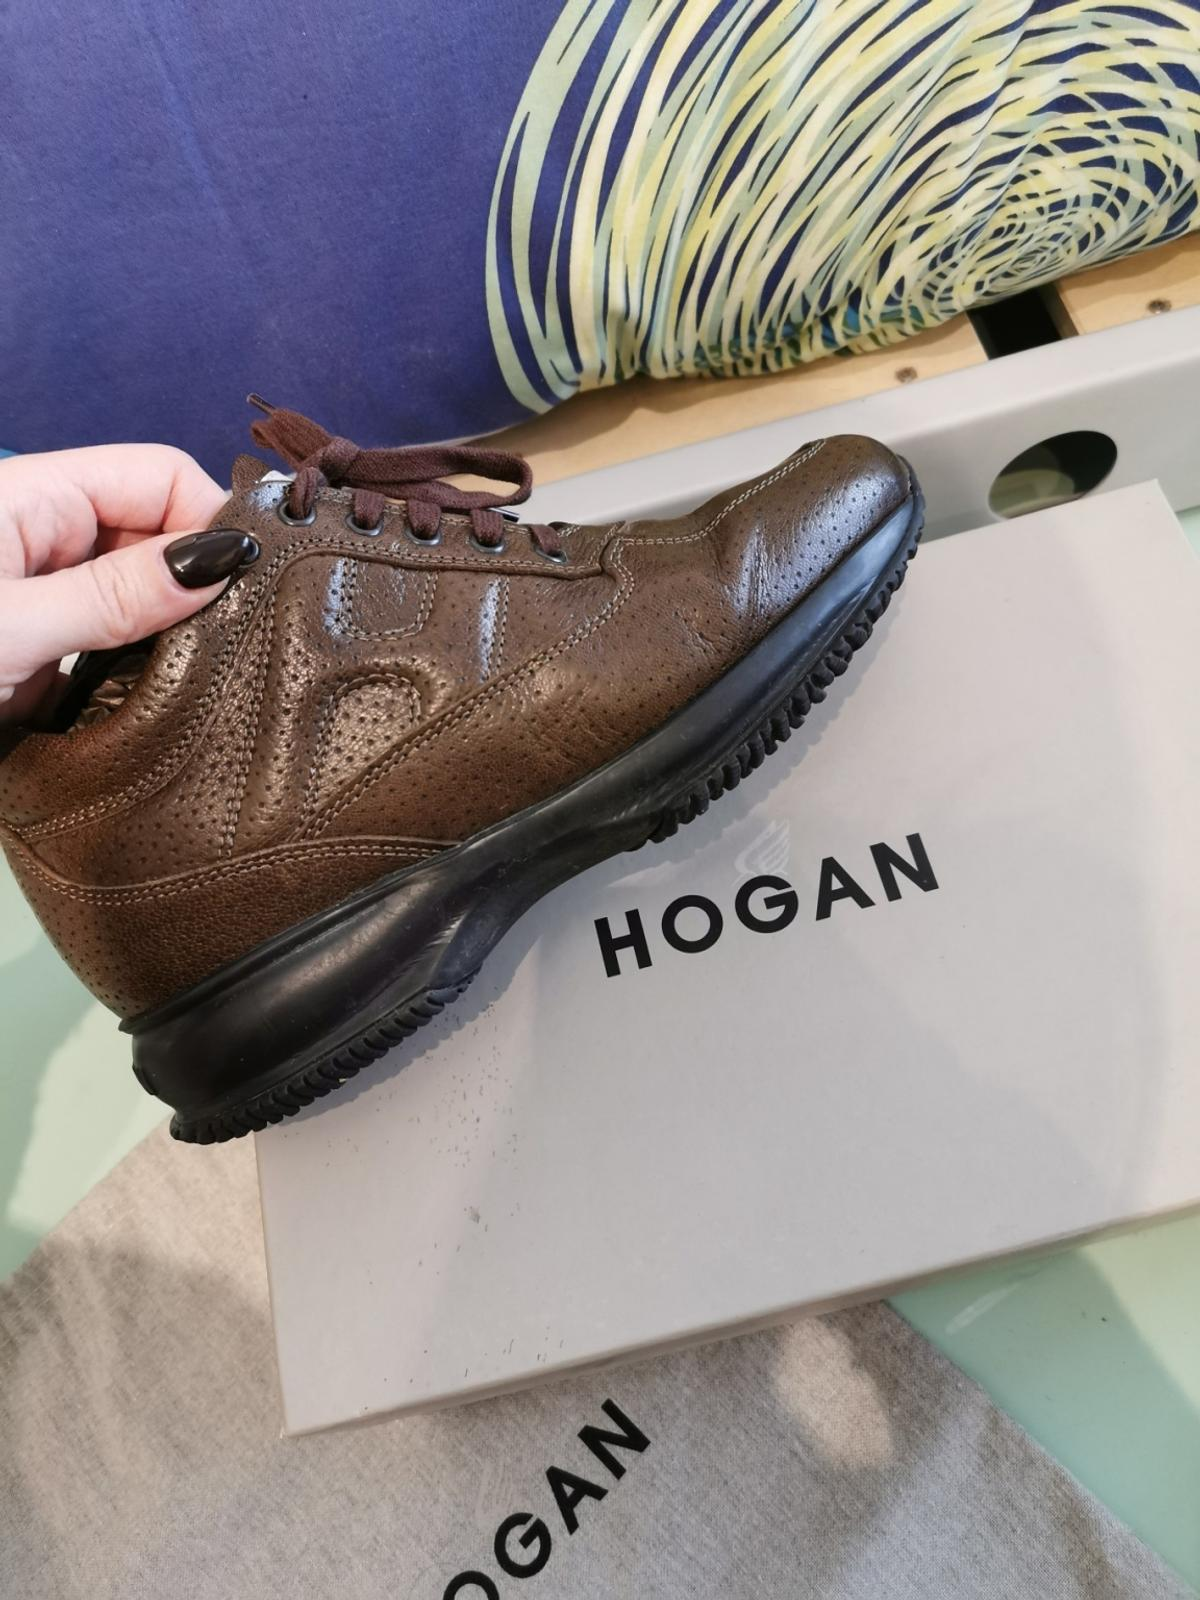 Hogan Donna 38 in 20090 Cesano Boscone for €50.00 for sale | Shpock